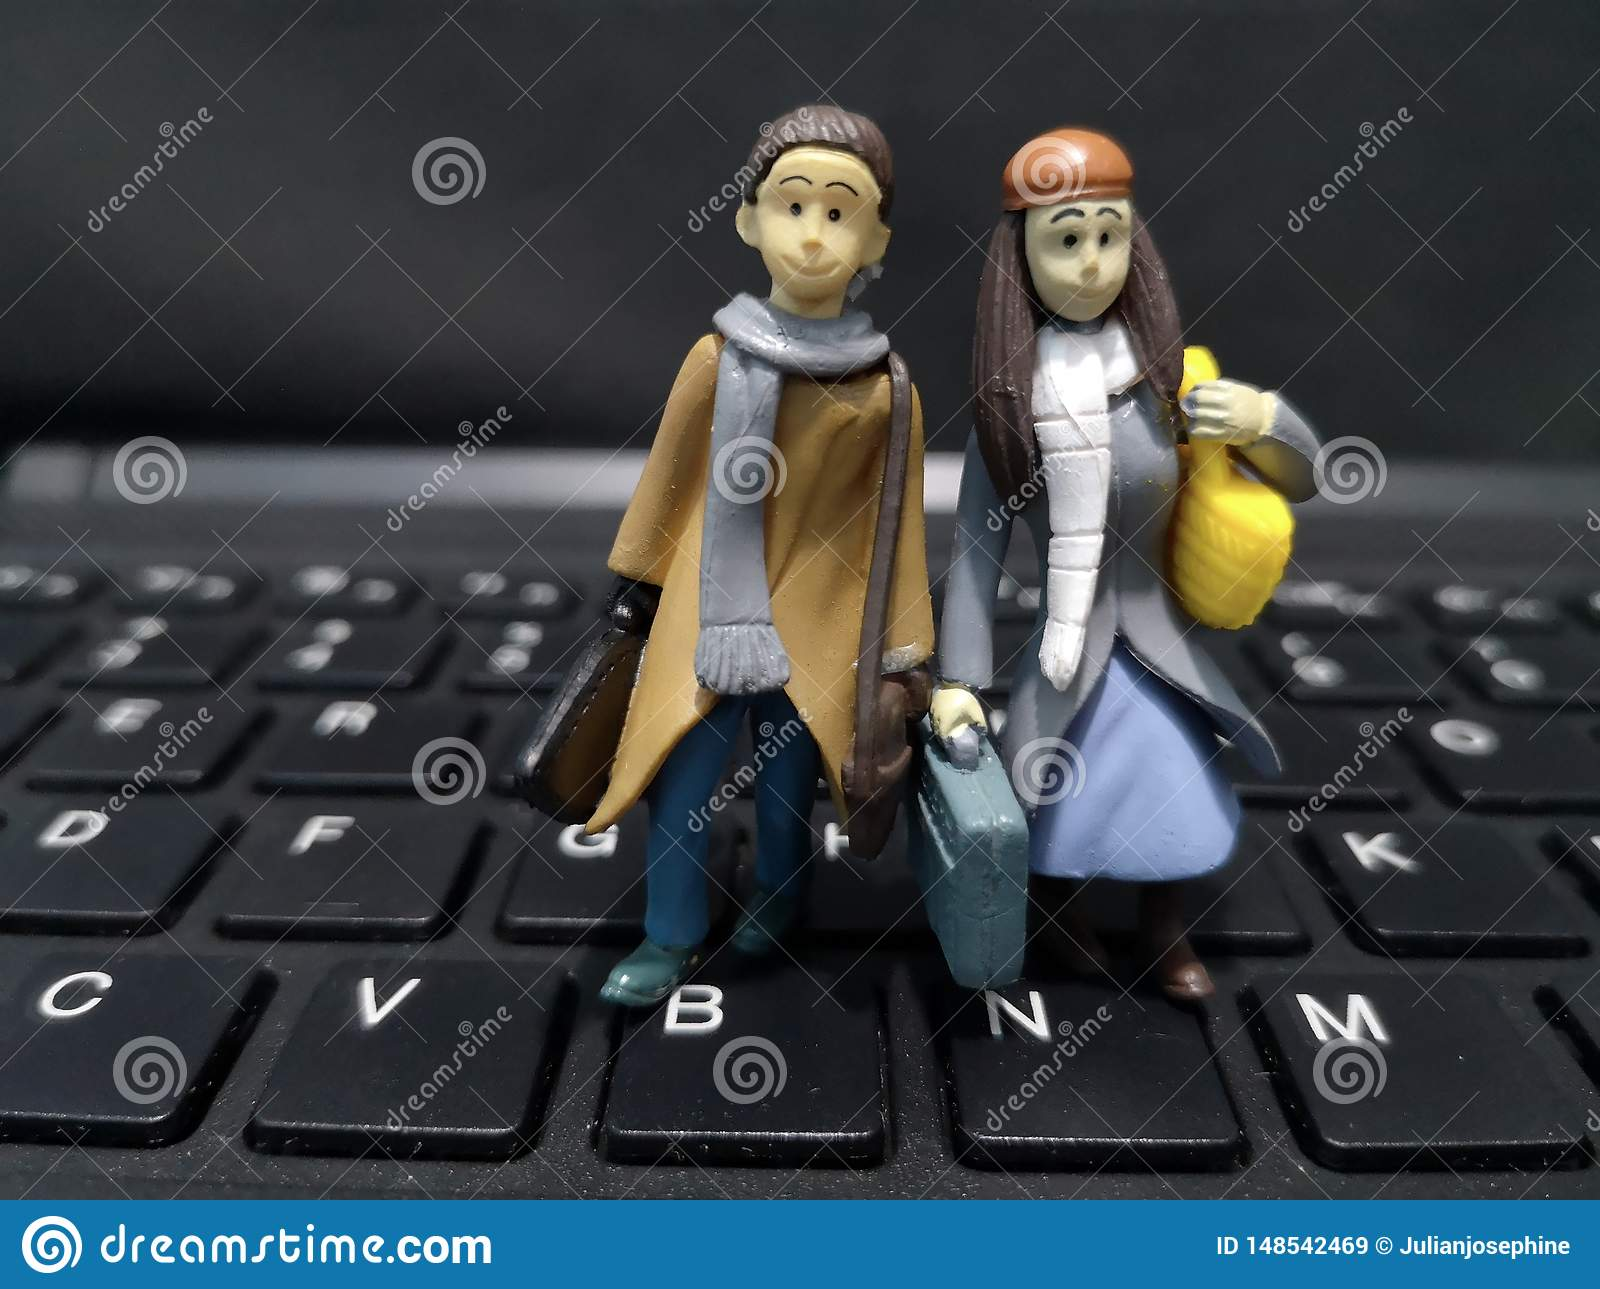 Closeup and macro shot of miniature working people with their suitcase and a computer background.